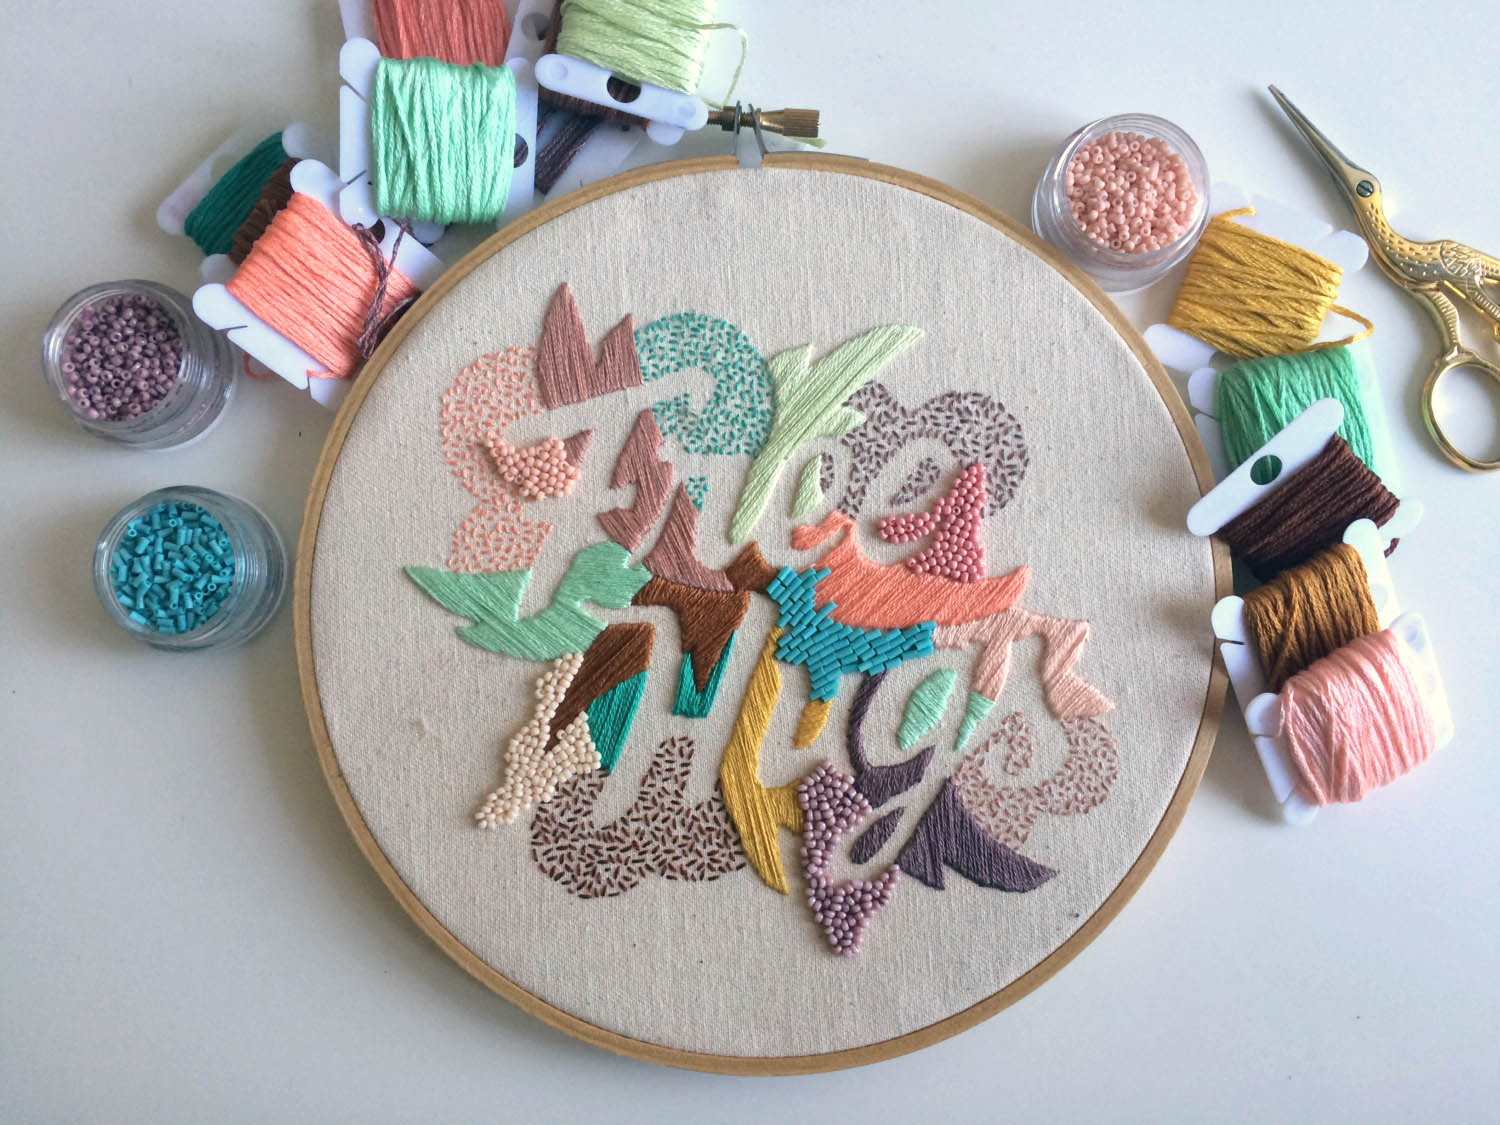 Embroidered typography by Valeria Molinari